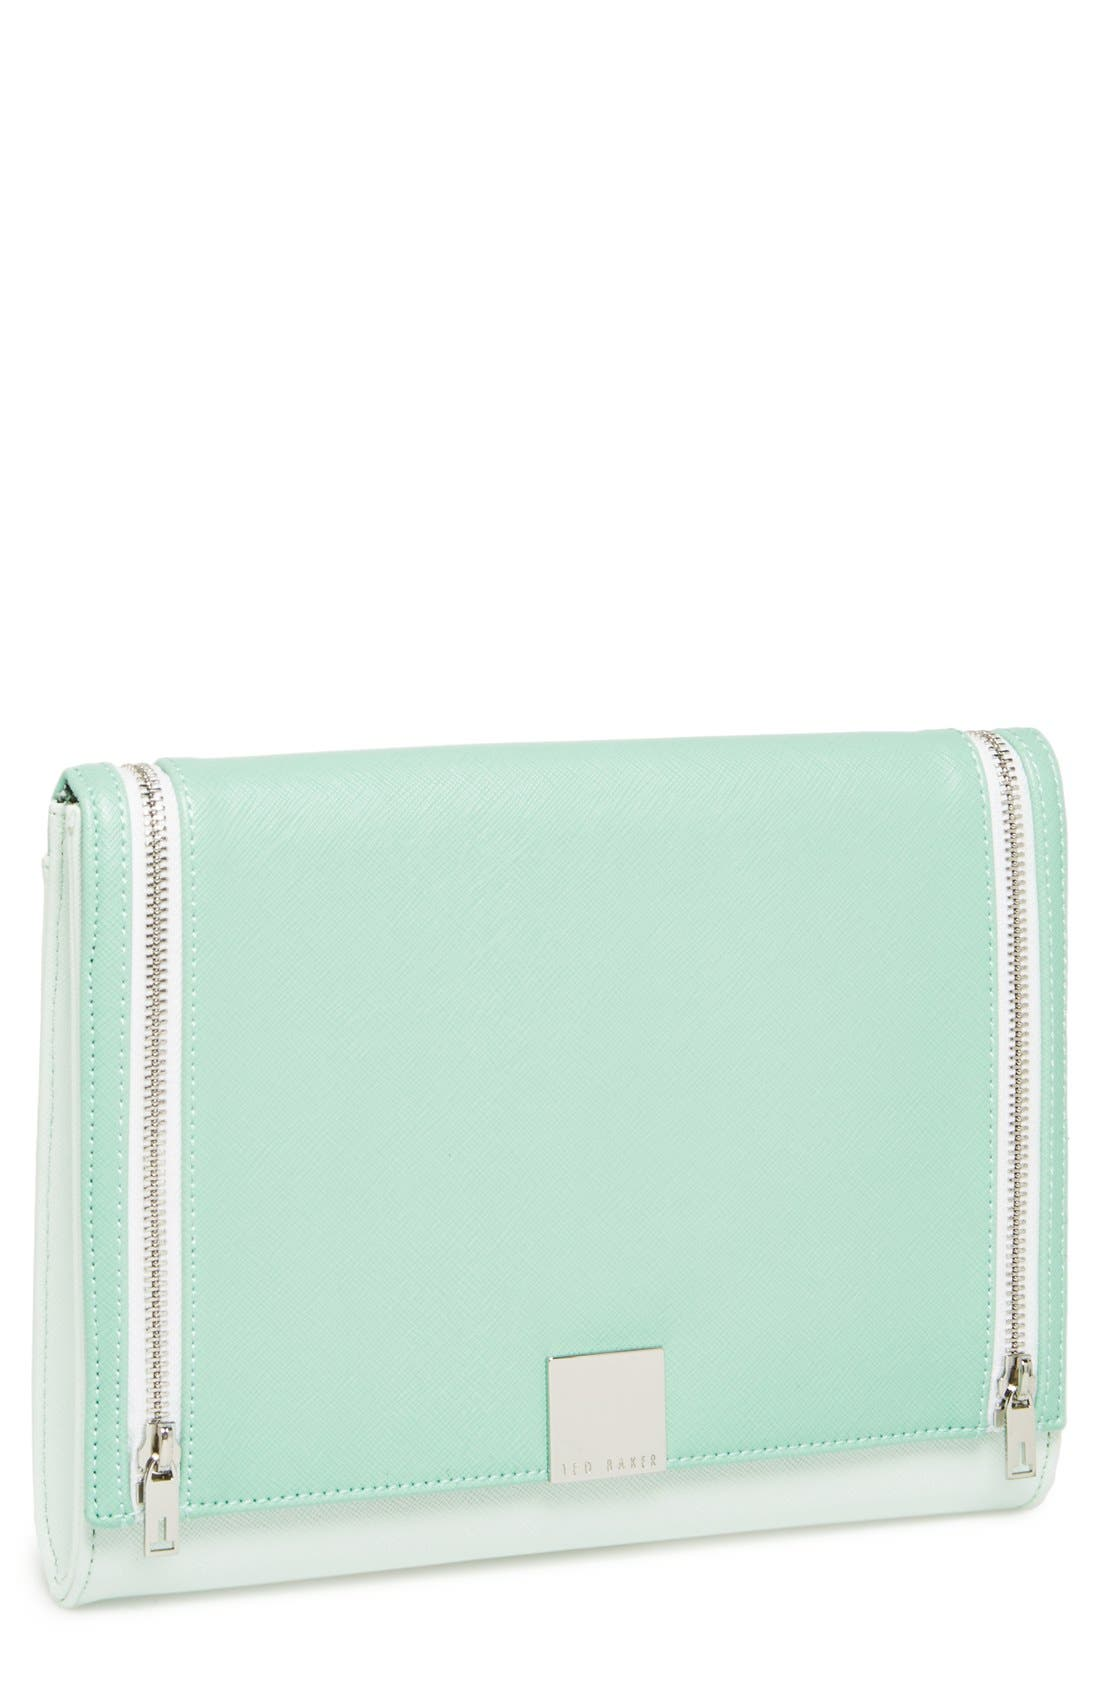 Main Image - Ted Baker London Clutch